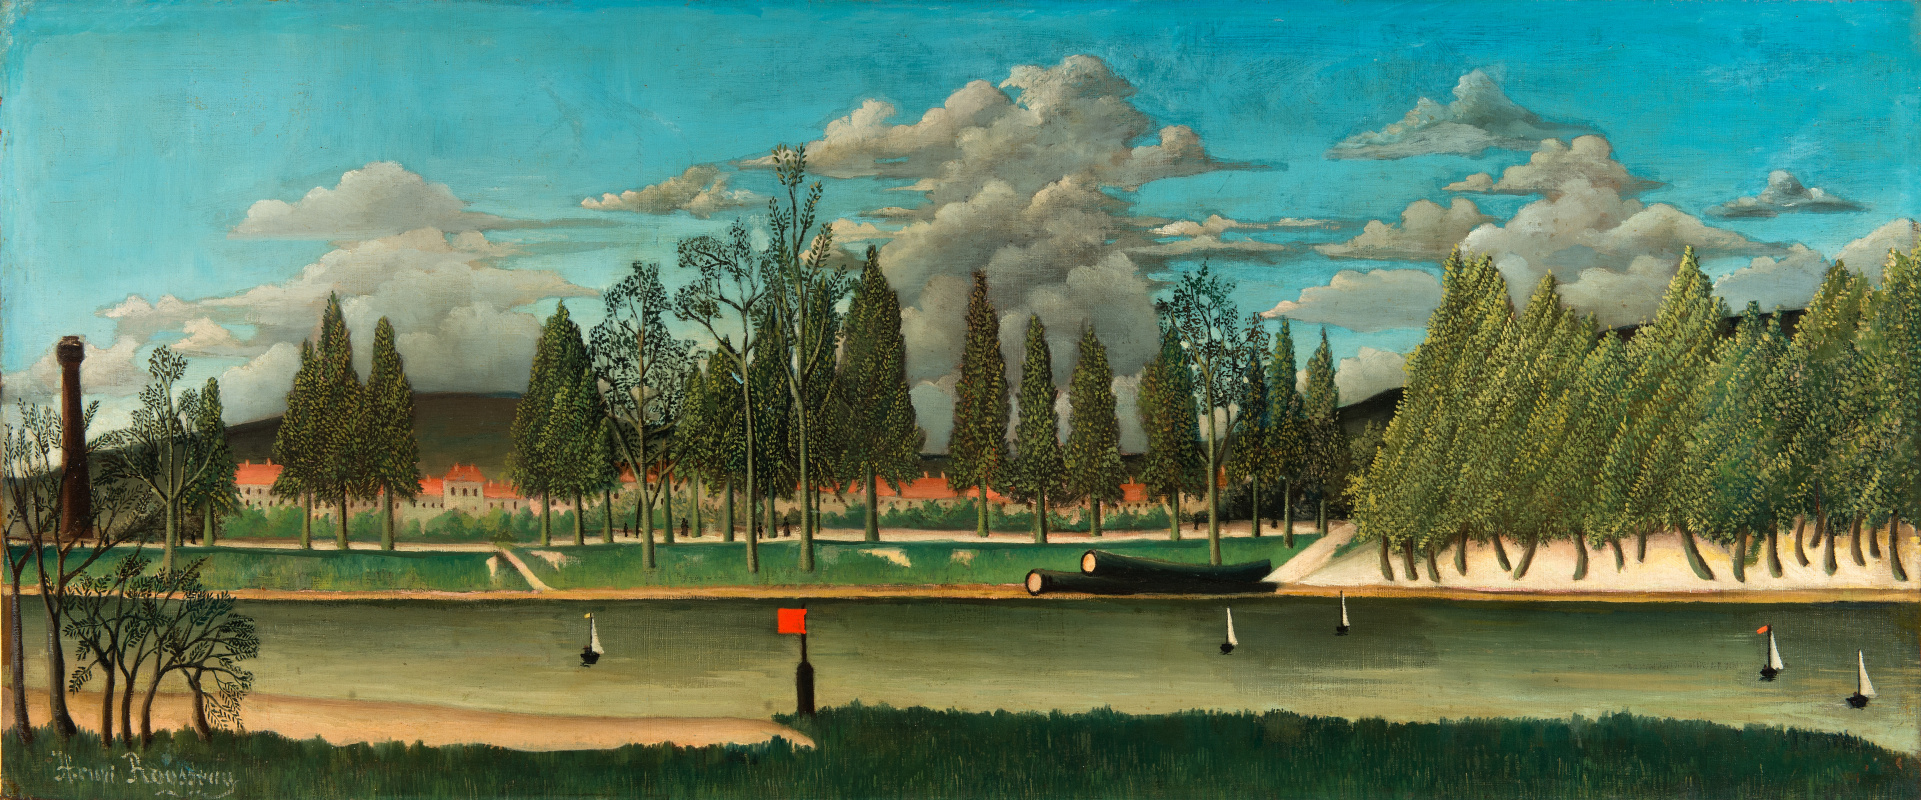 Henri Rousseau. The Canal and Landscape with Tree Trunks